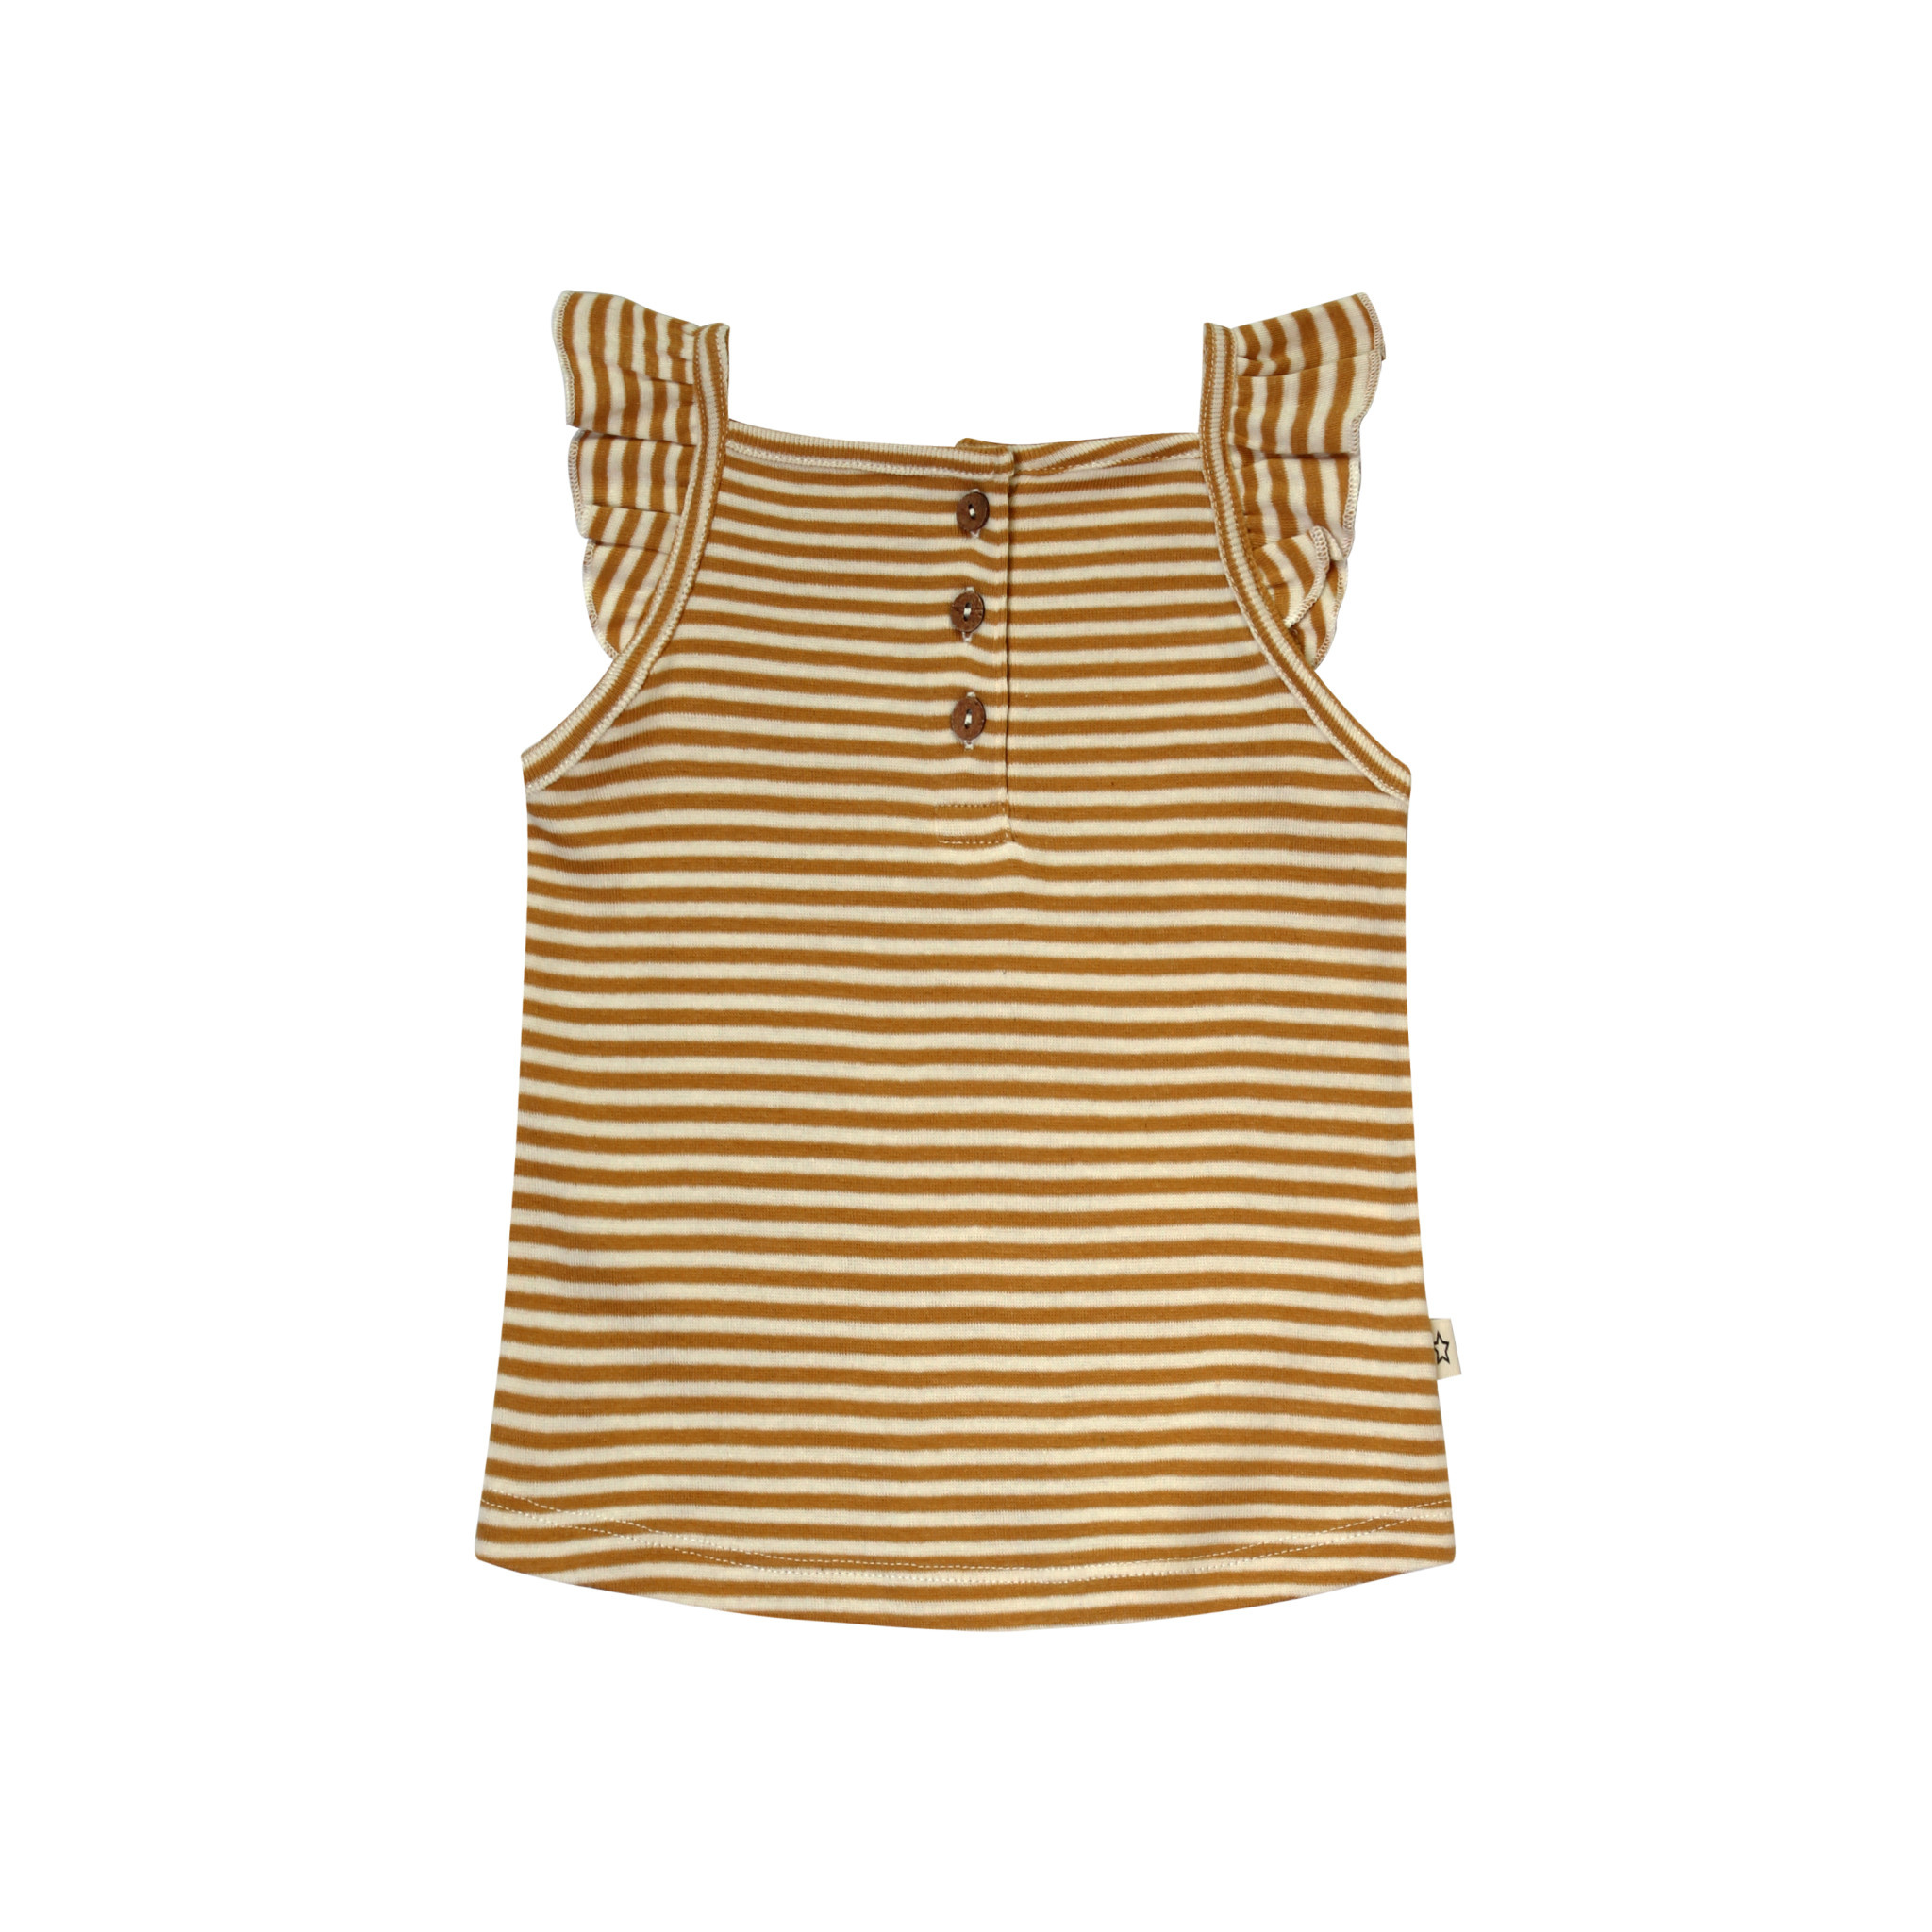 Your Wishes Your Wishes - Ruffle Singlet Gold stripes